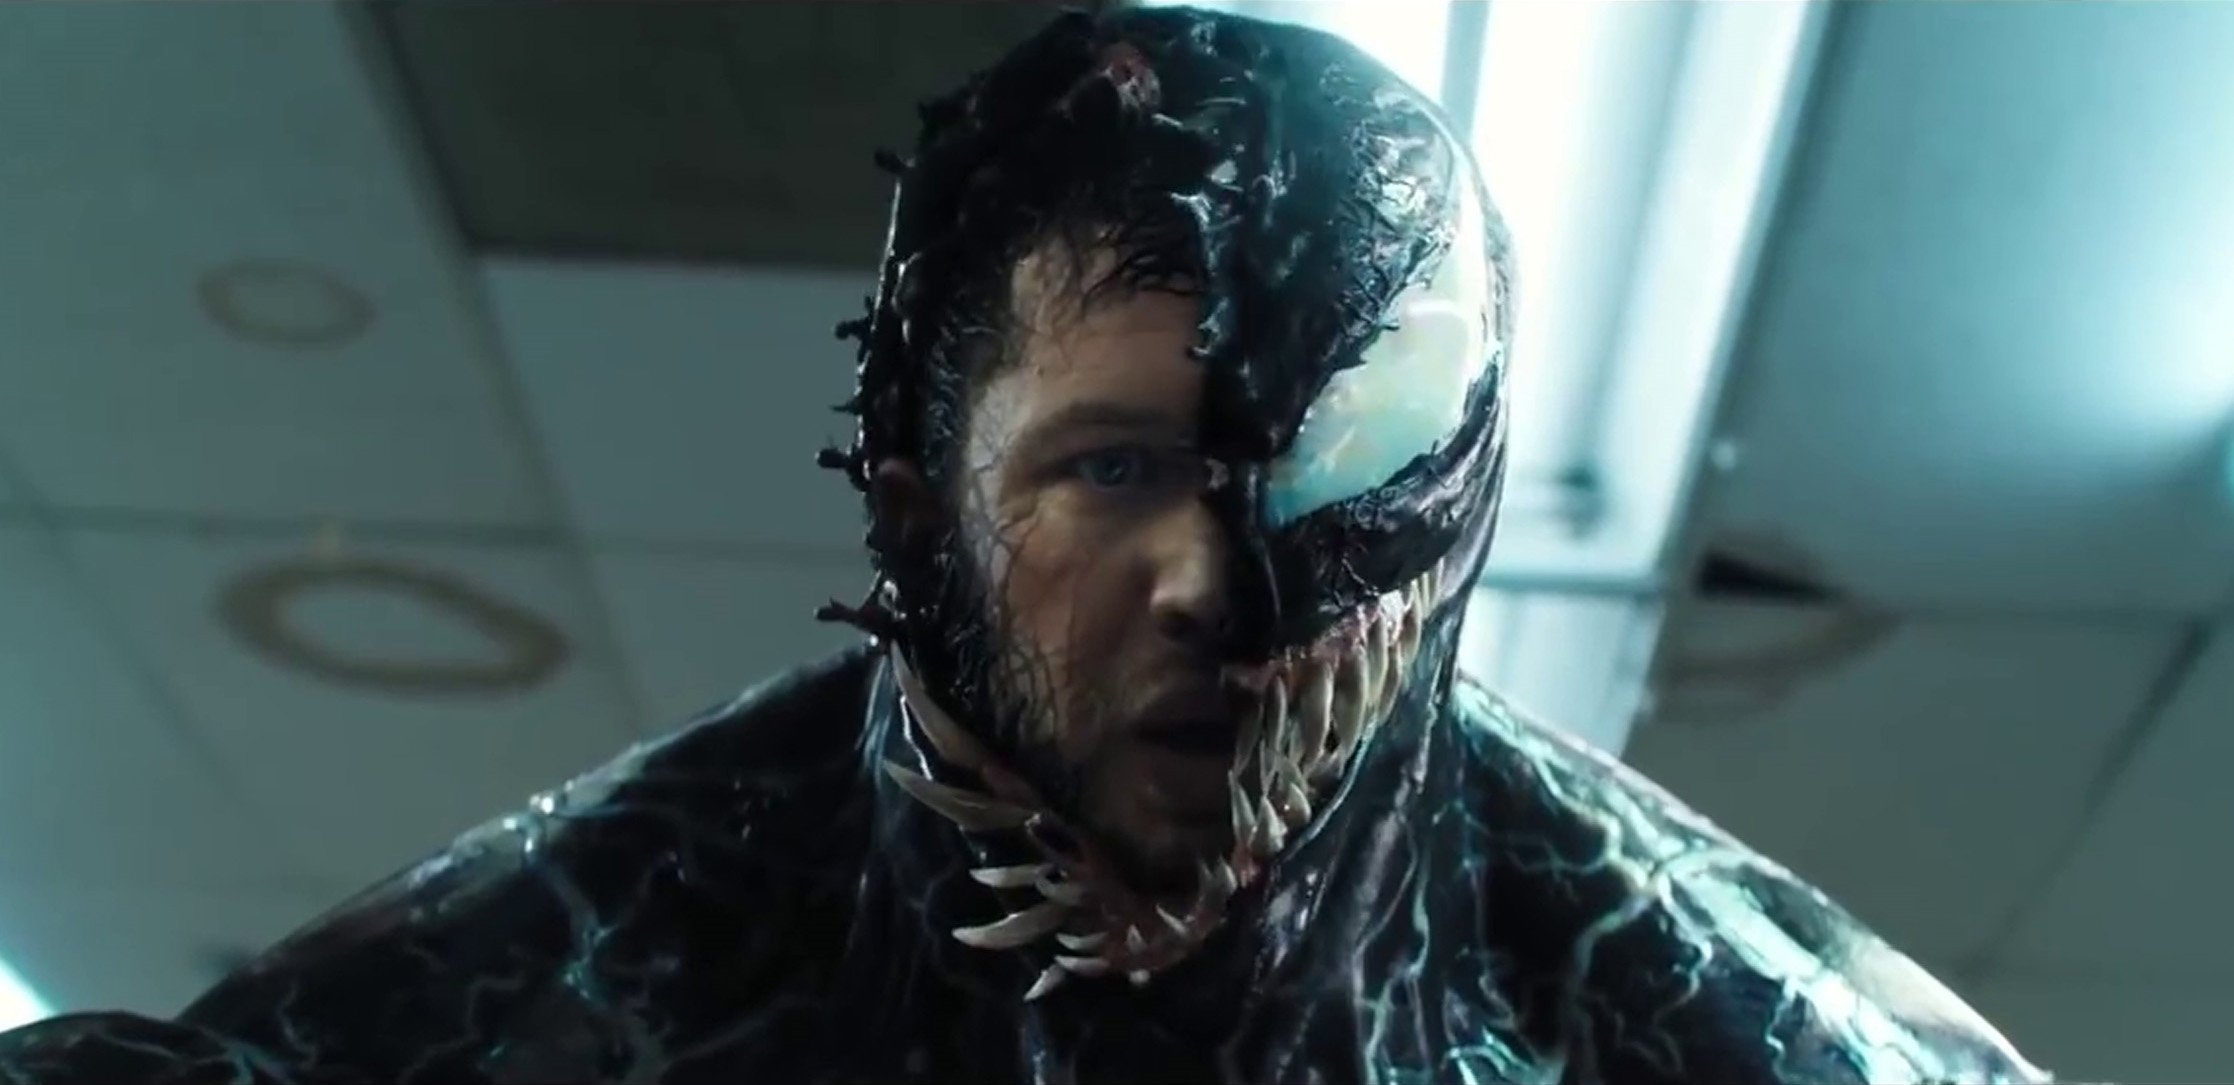 Venom critics give movie harsh reviews despite Tom Hardy wanting sequel